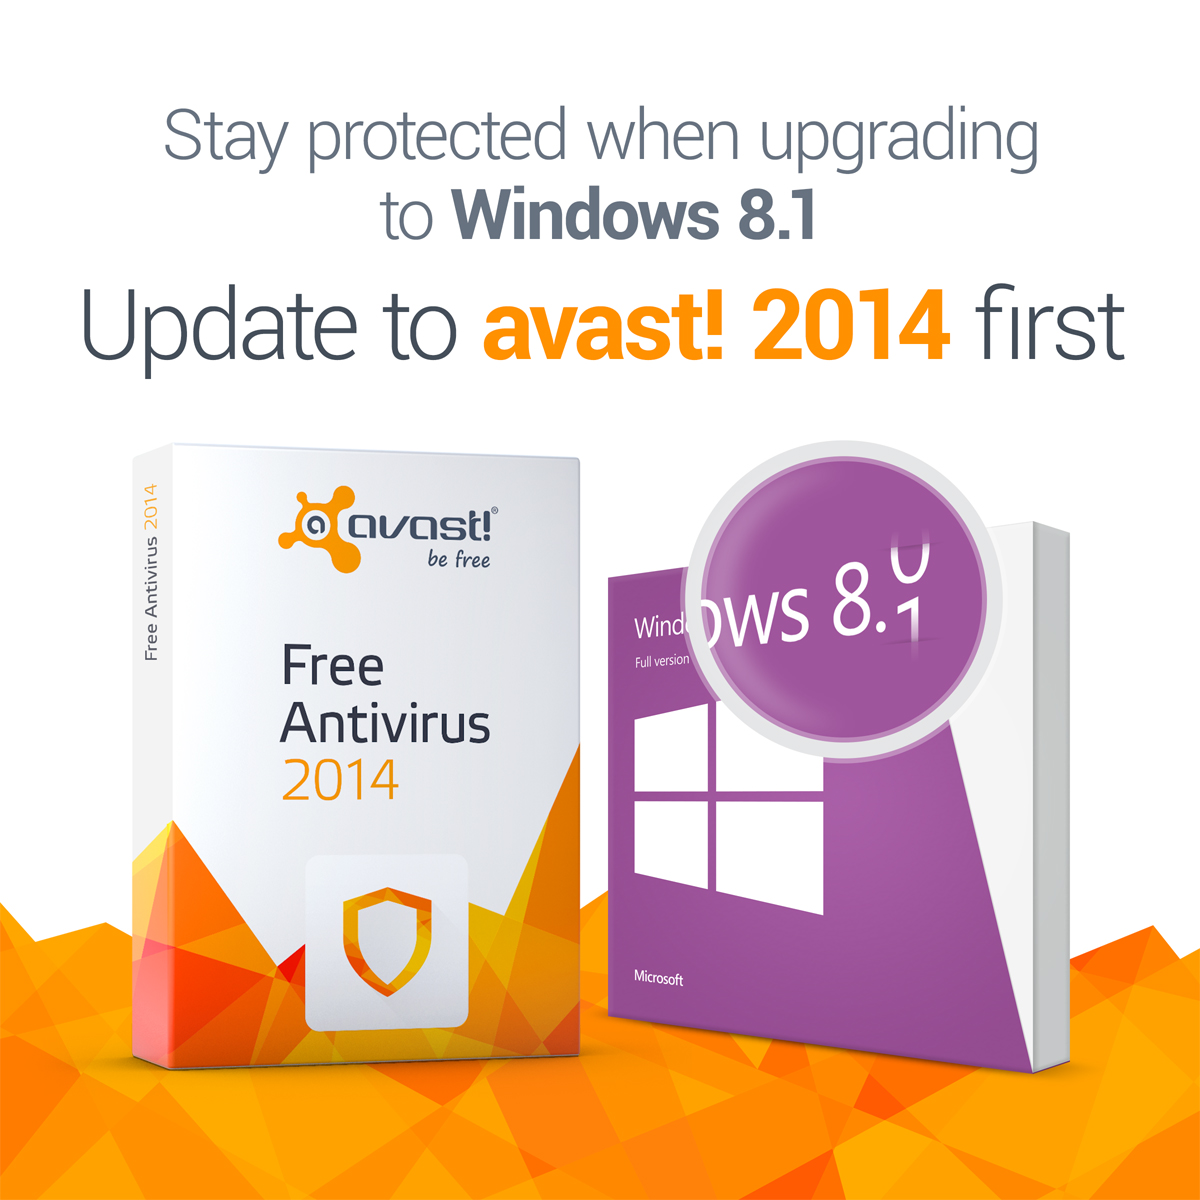 First upgrade to avast! 2014, then to Windows 8 1